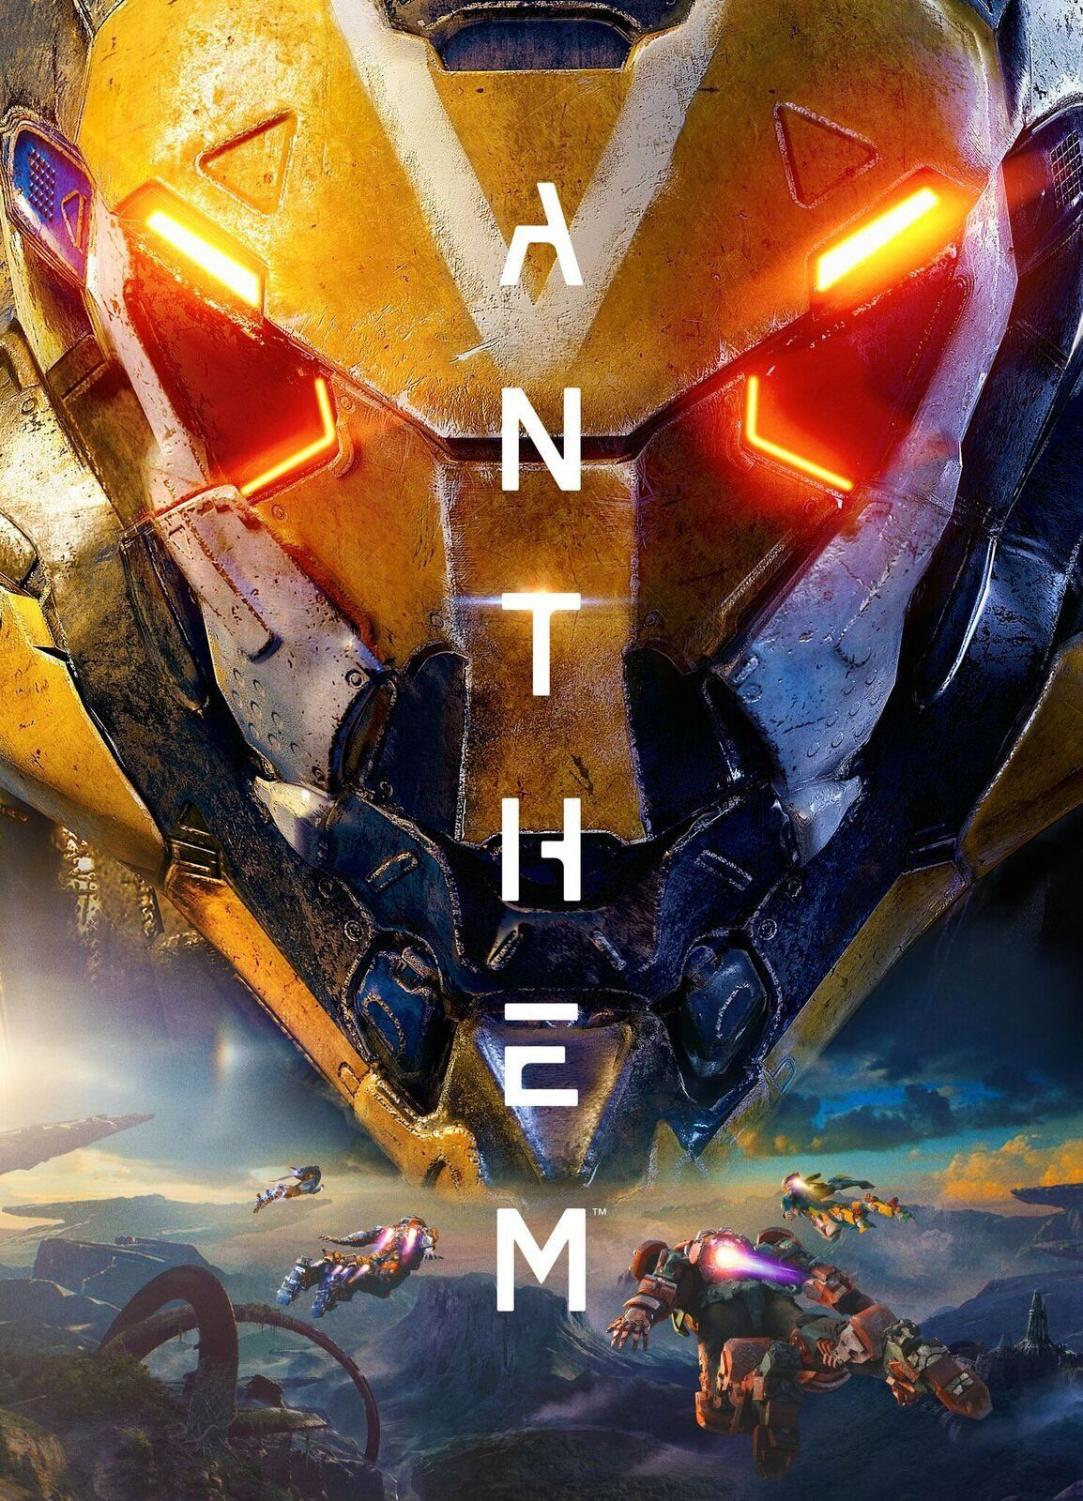 Anthem box art courtesy of Bioware and EA